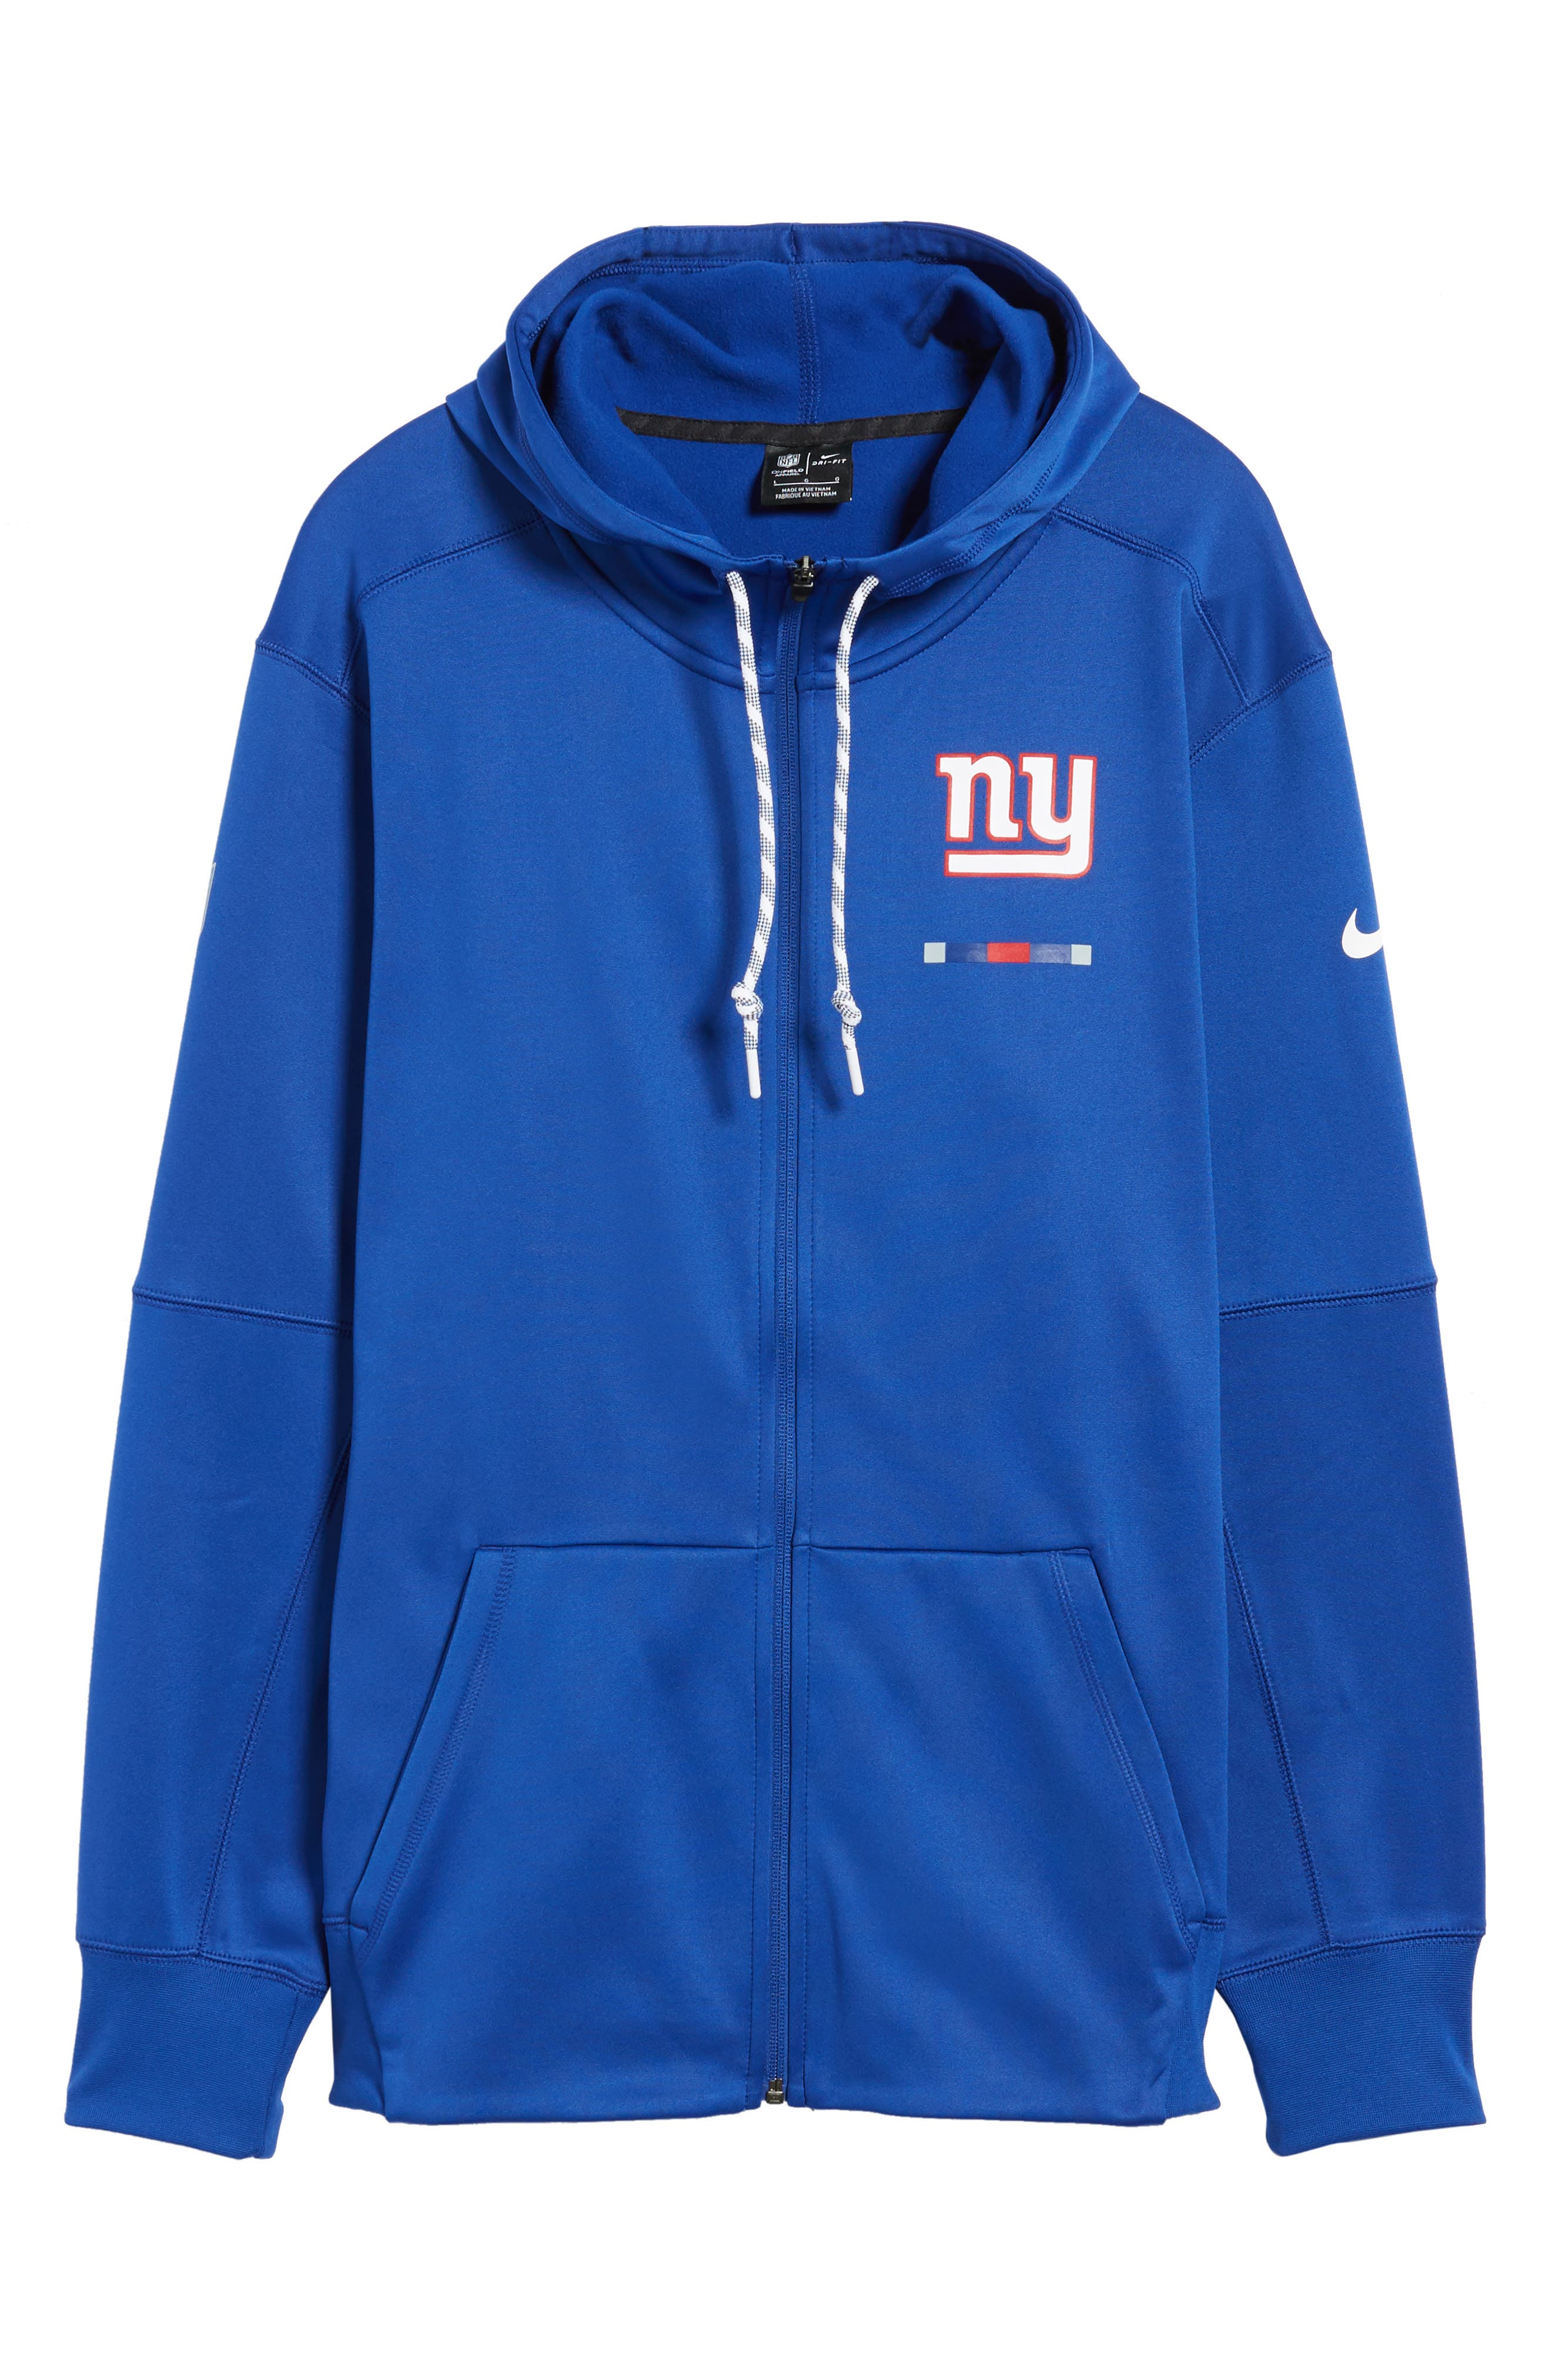 Therma-FIT NFL Graphic Zip Hoodie,                             Alternate thumbnail 37, color,